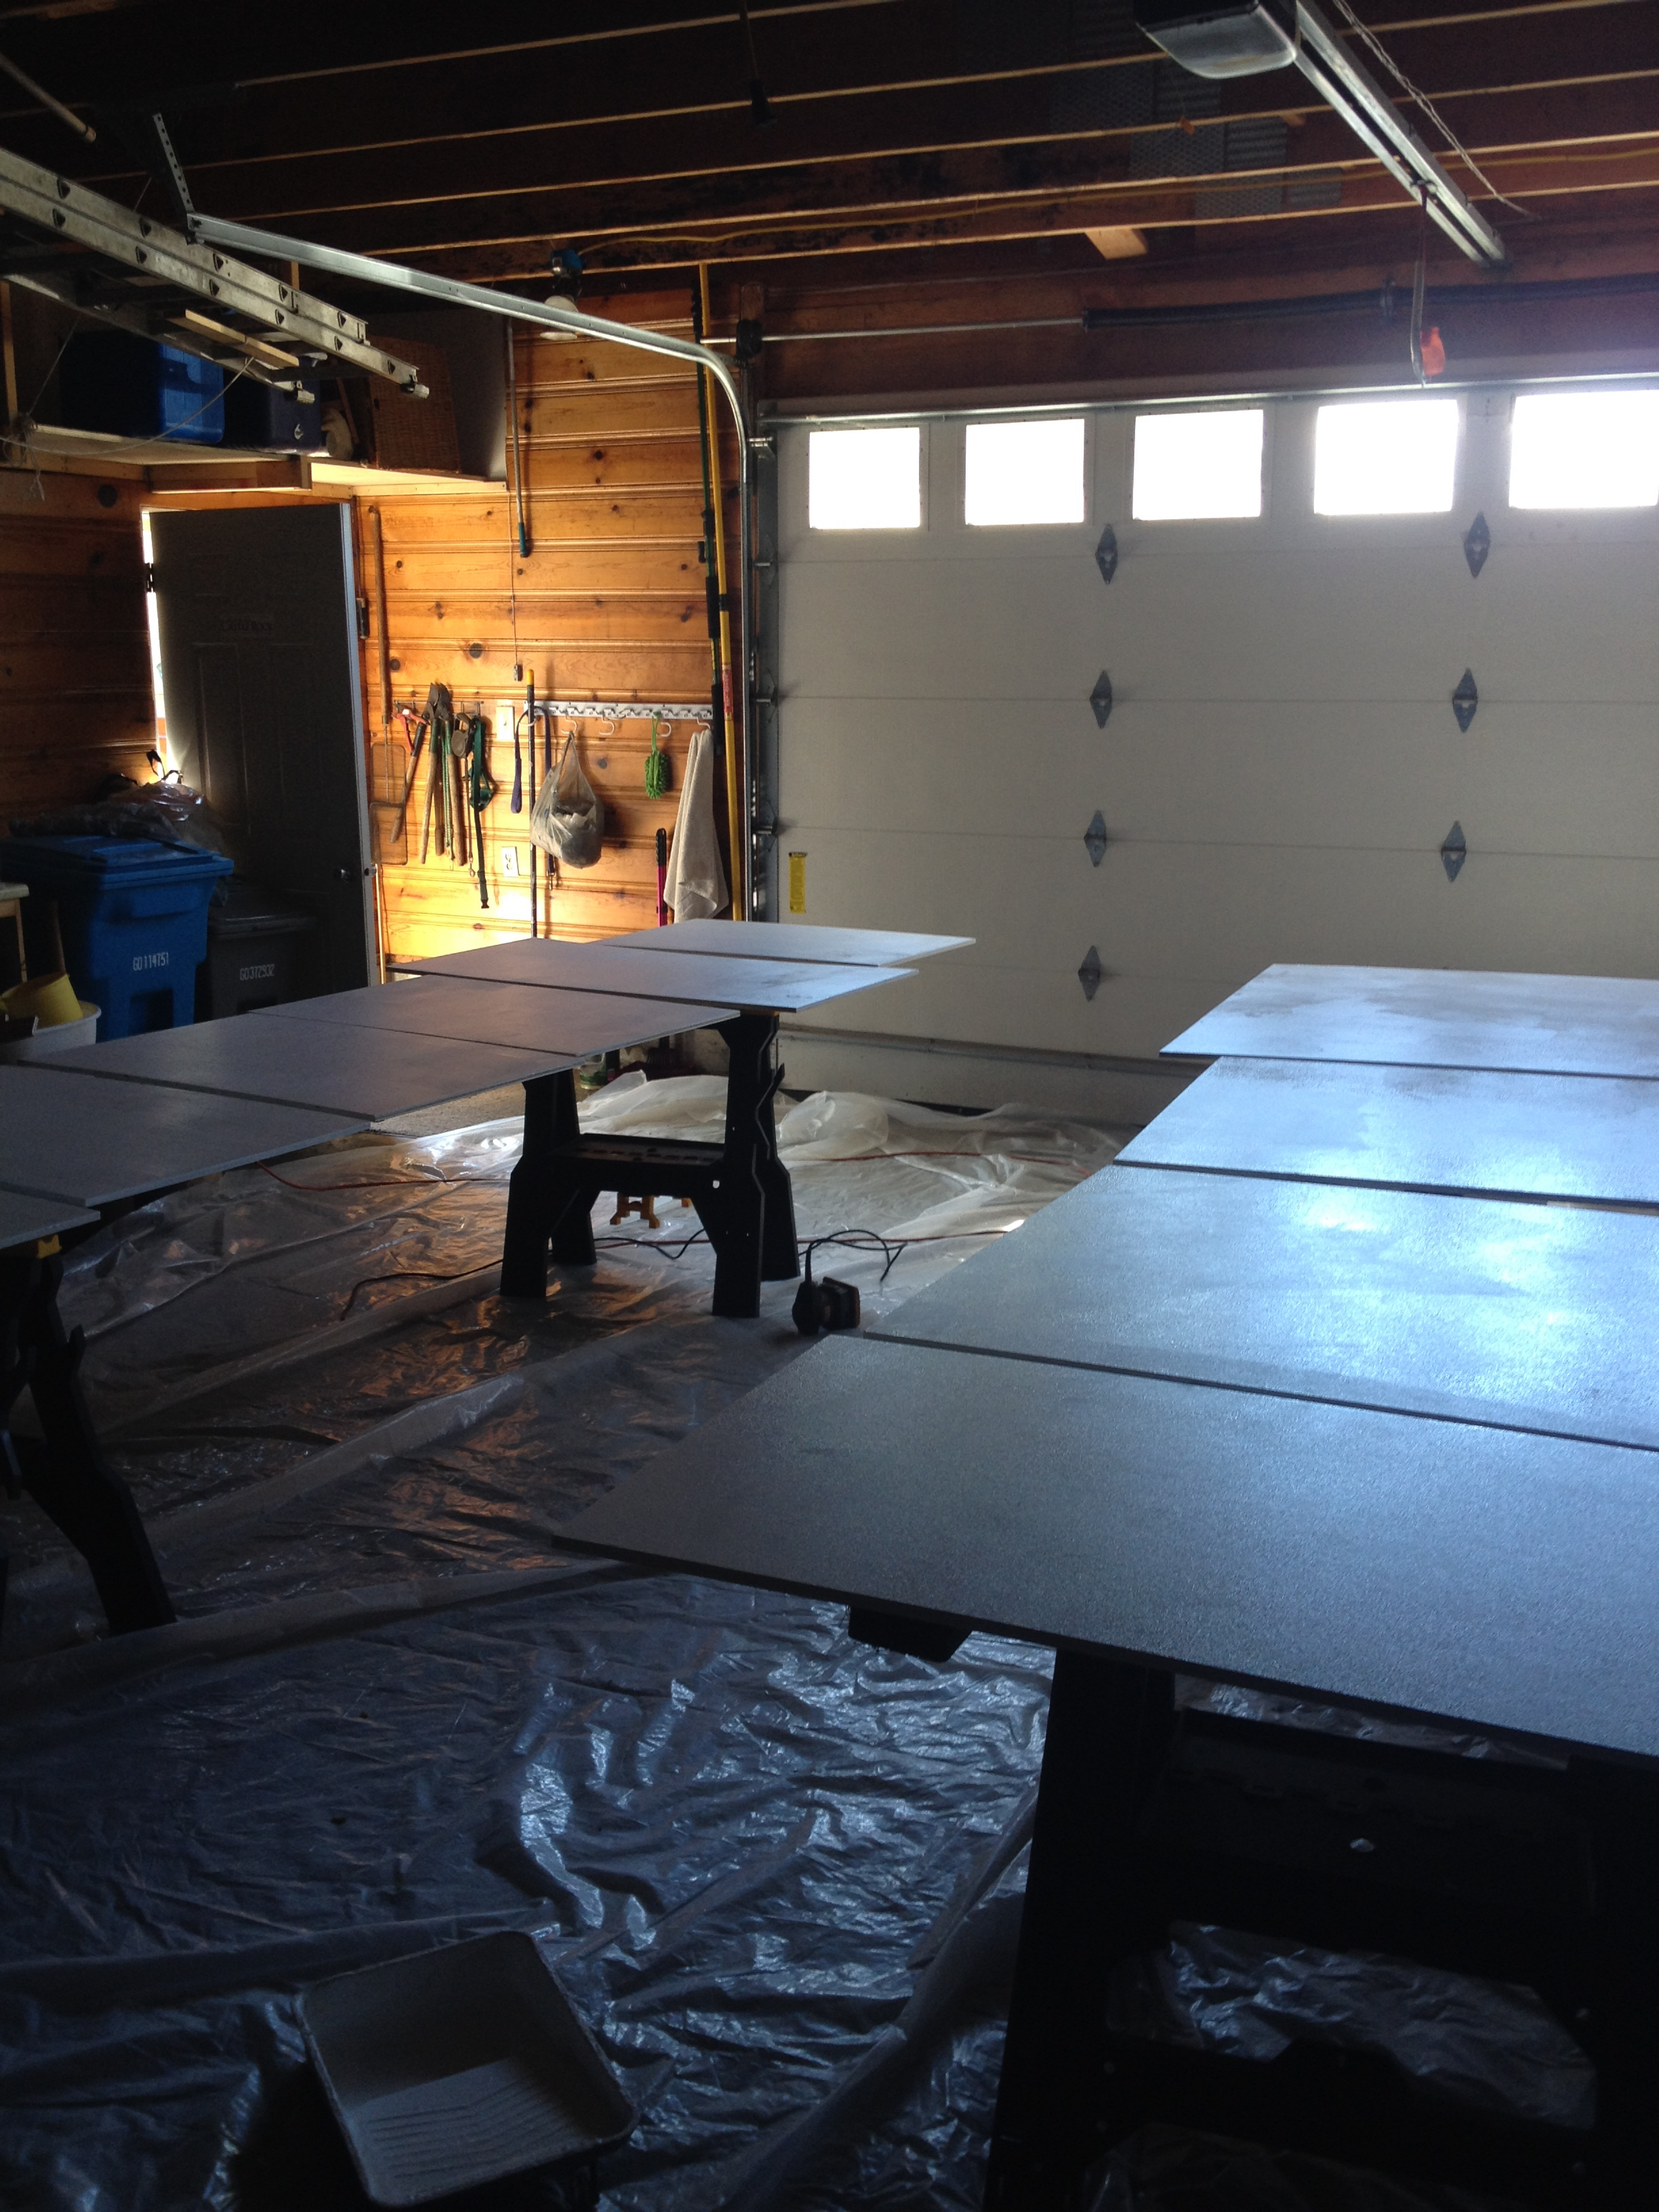 panels being primed in my father's garage, July 2015